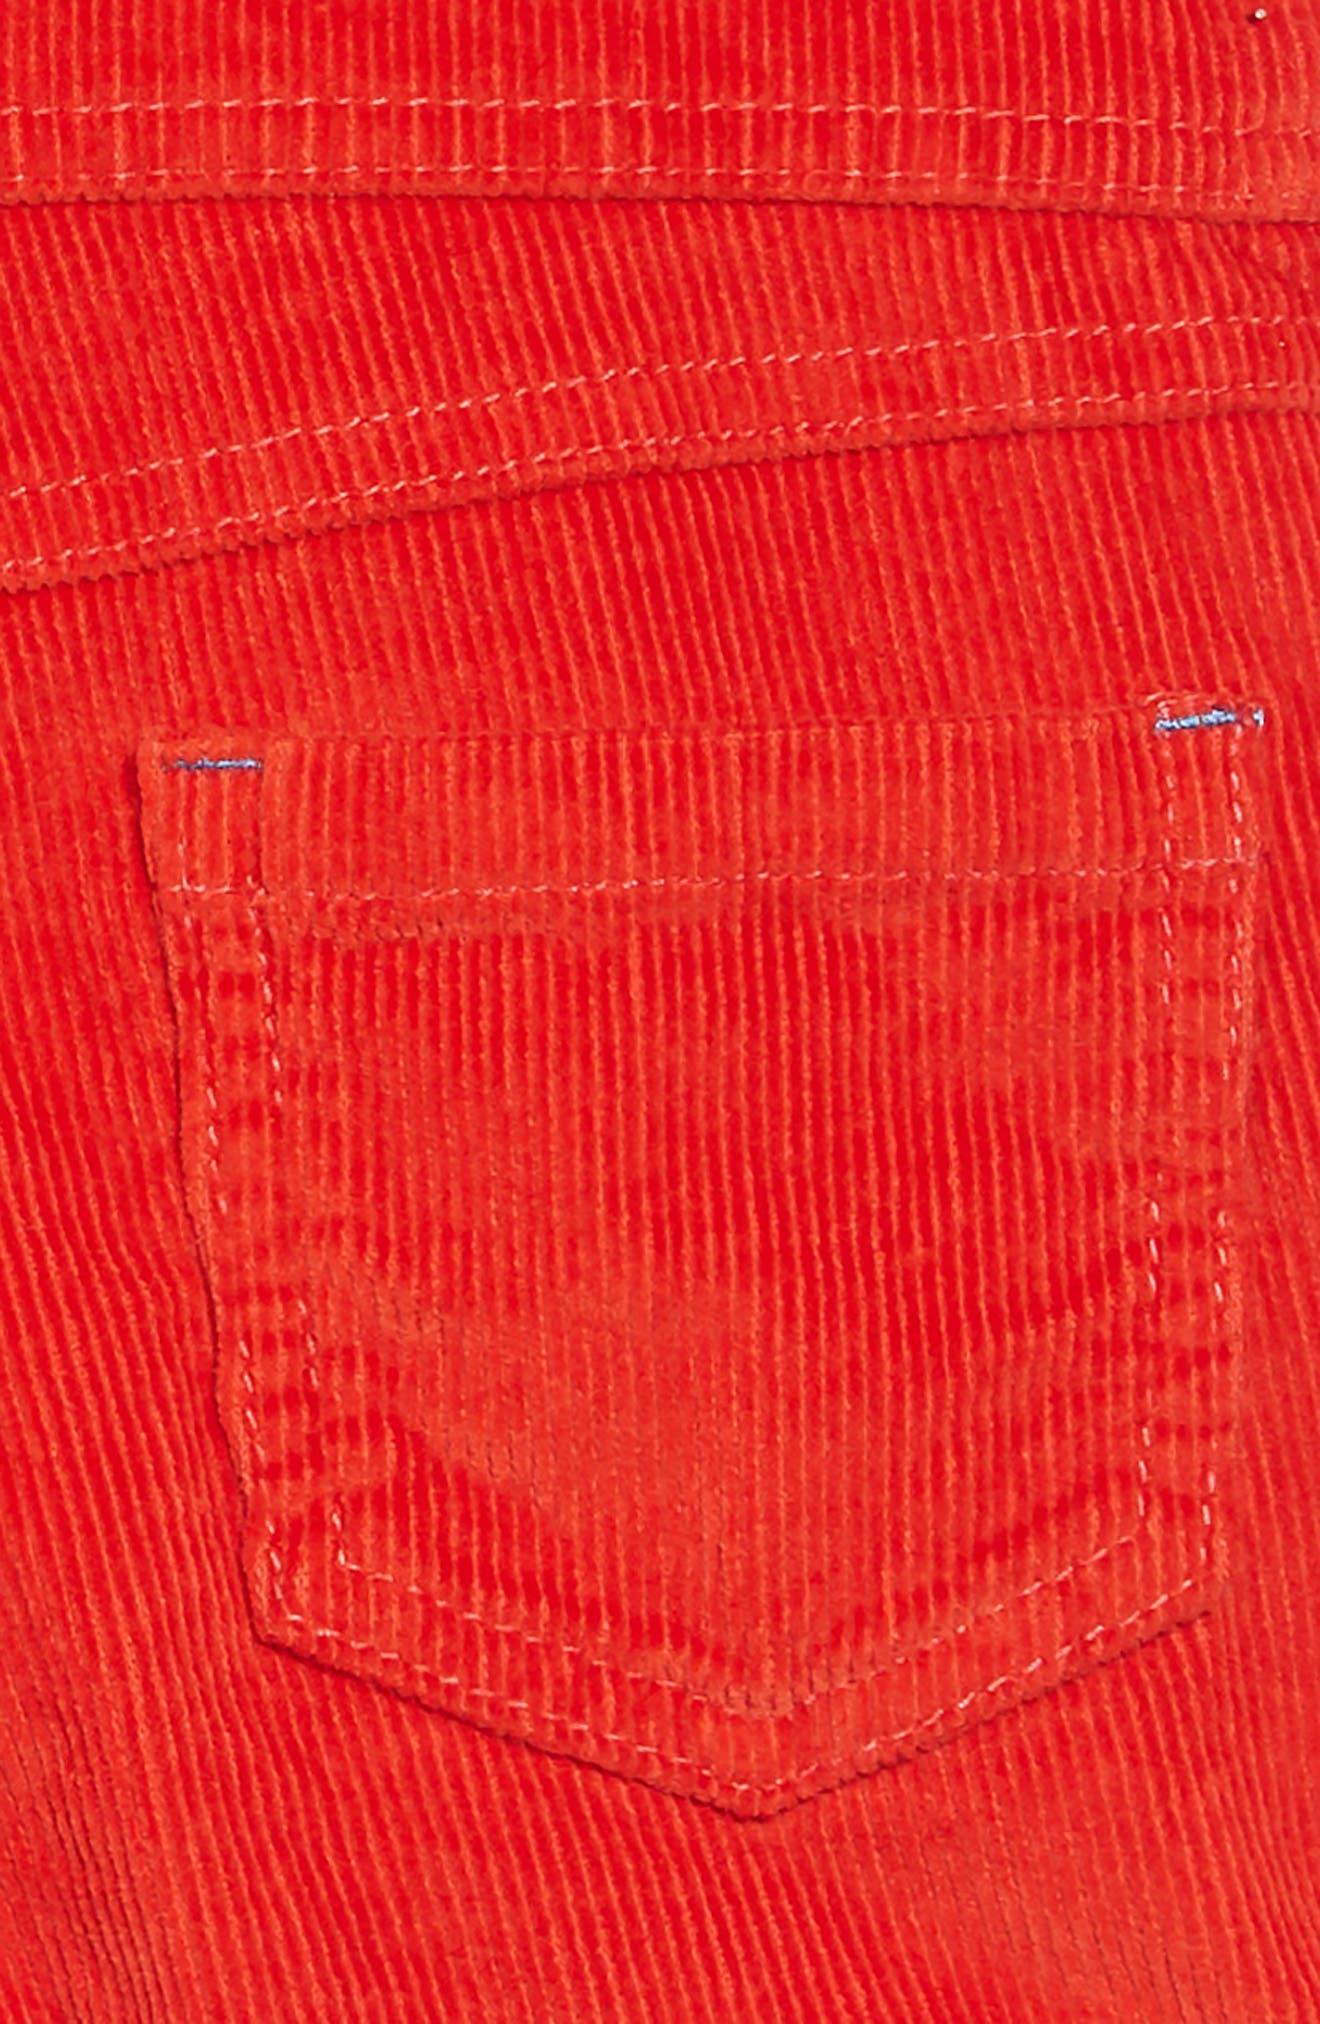 Dungarees Short Overalls,                             Alternate thumbnail 3, color,                             RED POPPY RED